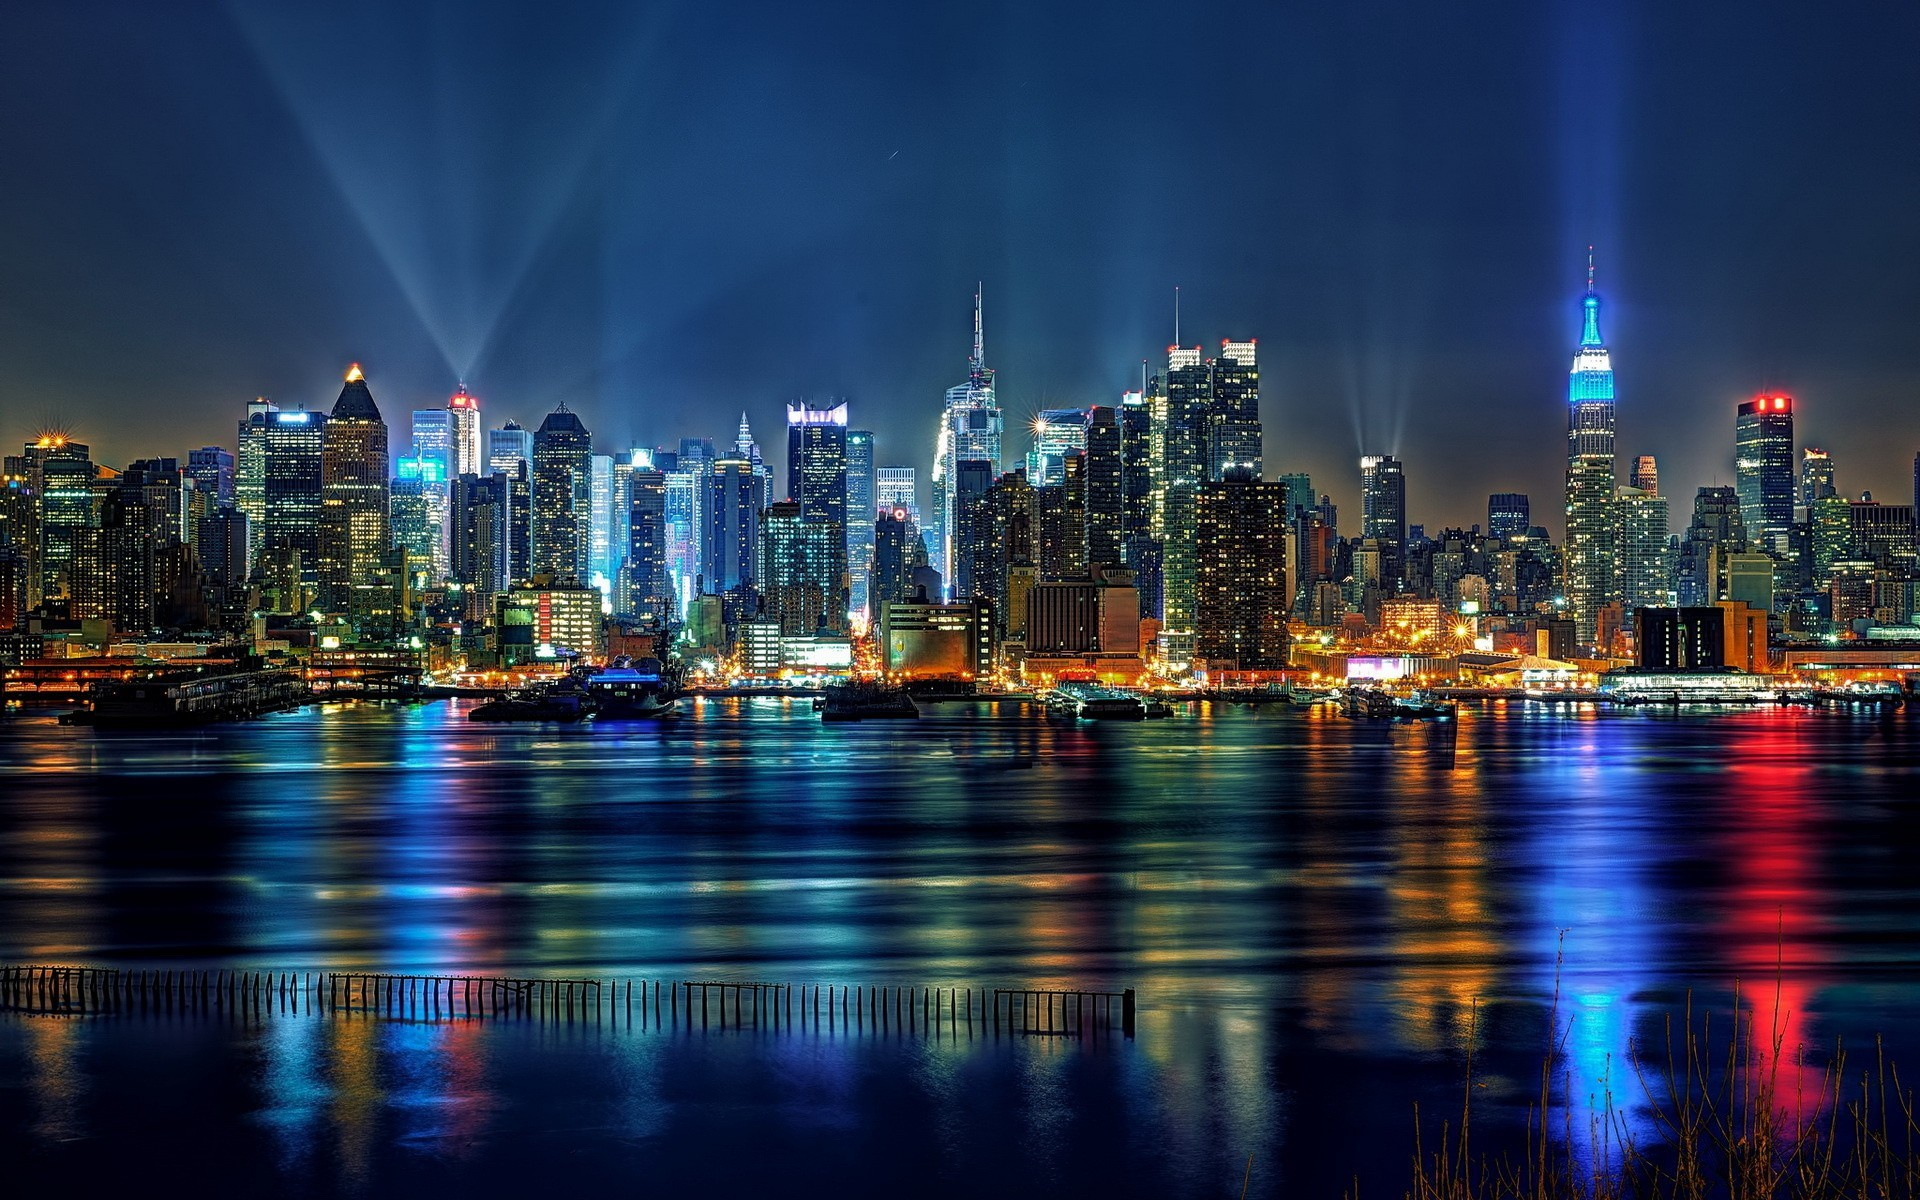 Night Time City Wallpaper (63+ images)